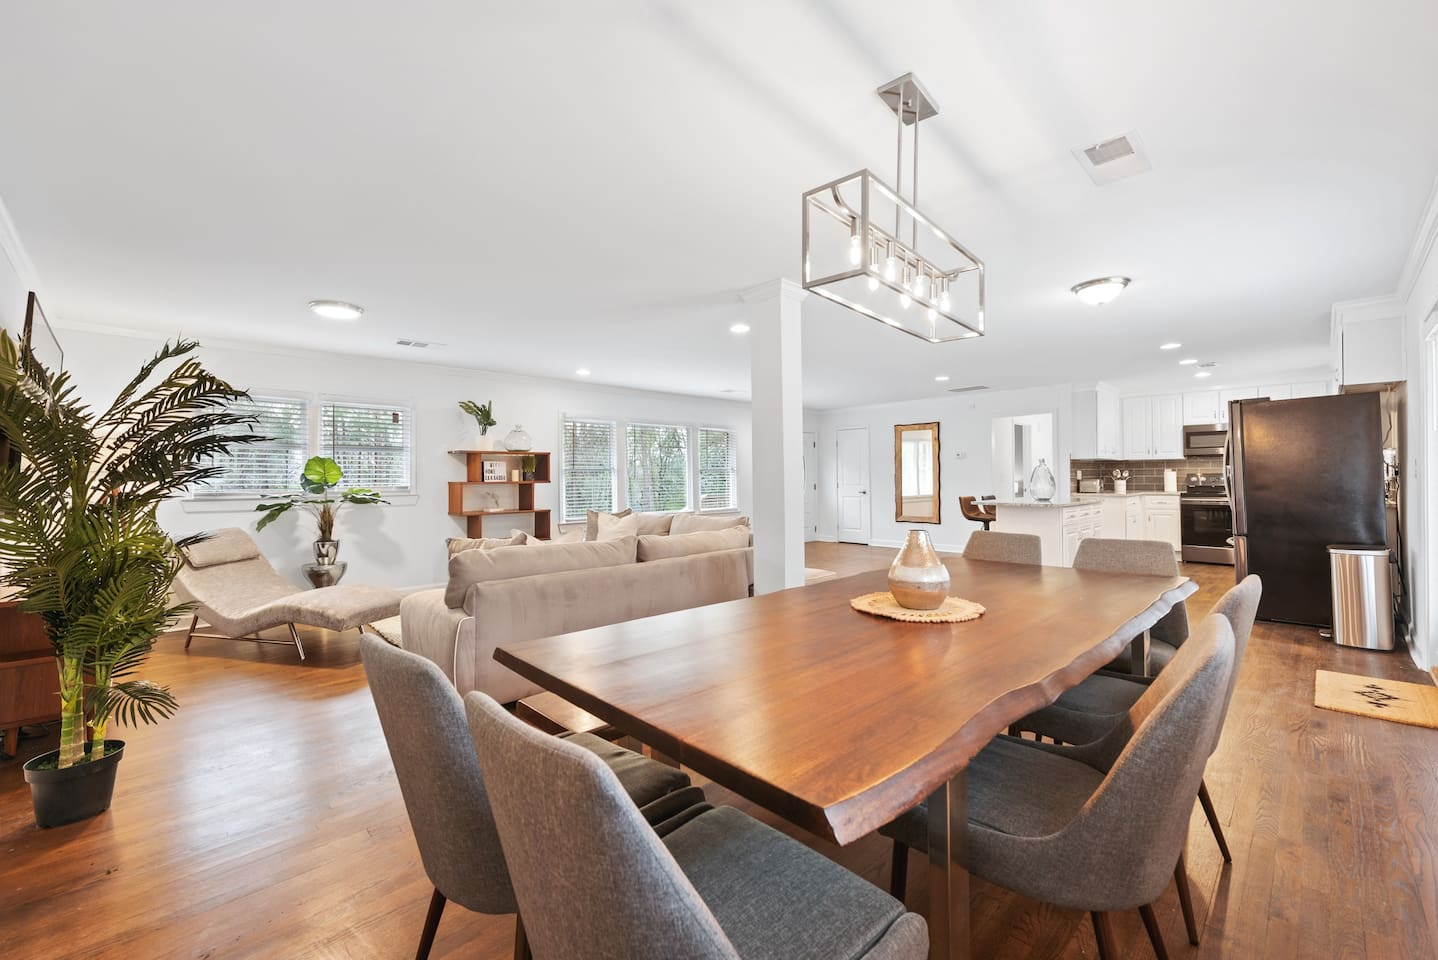 Spacious living areas, dining area shown- all furniture brand new